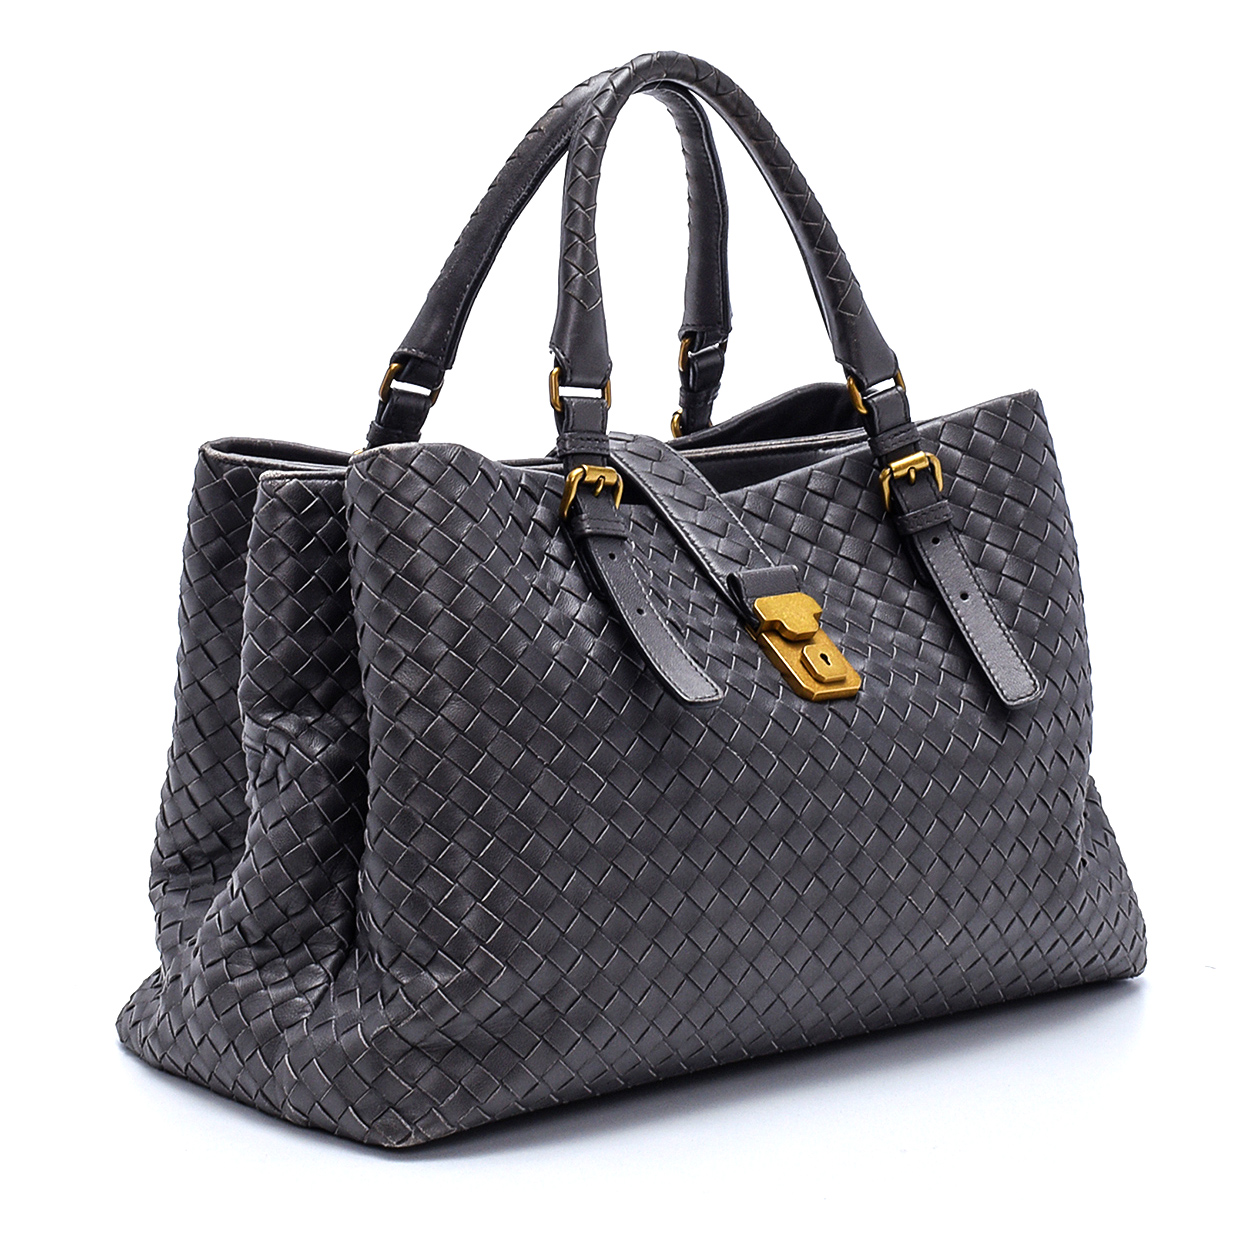 Bottega Veneta - Grey Intrecciato Leather Large Roma Tote Bag